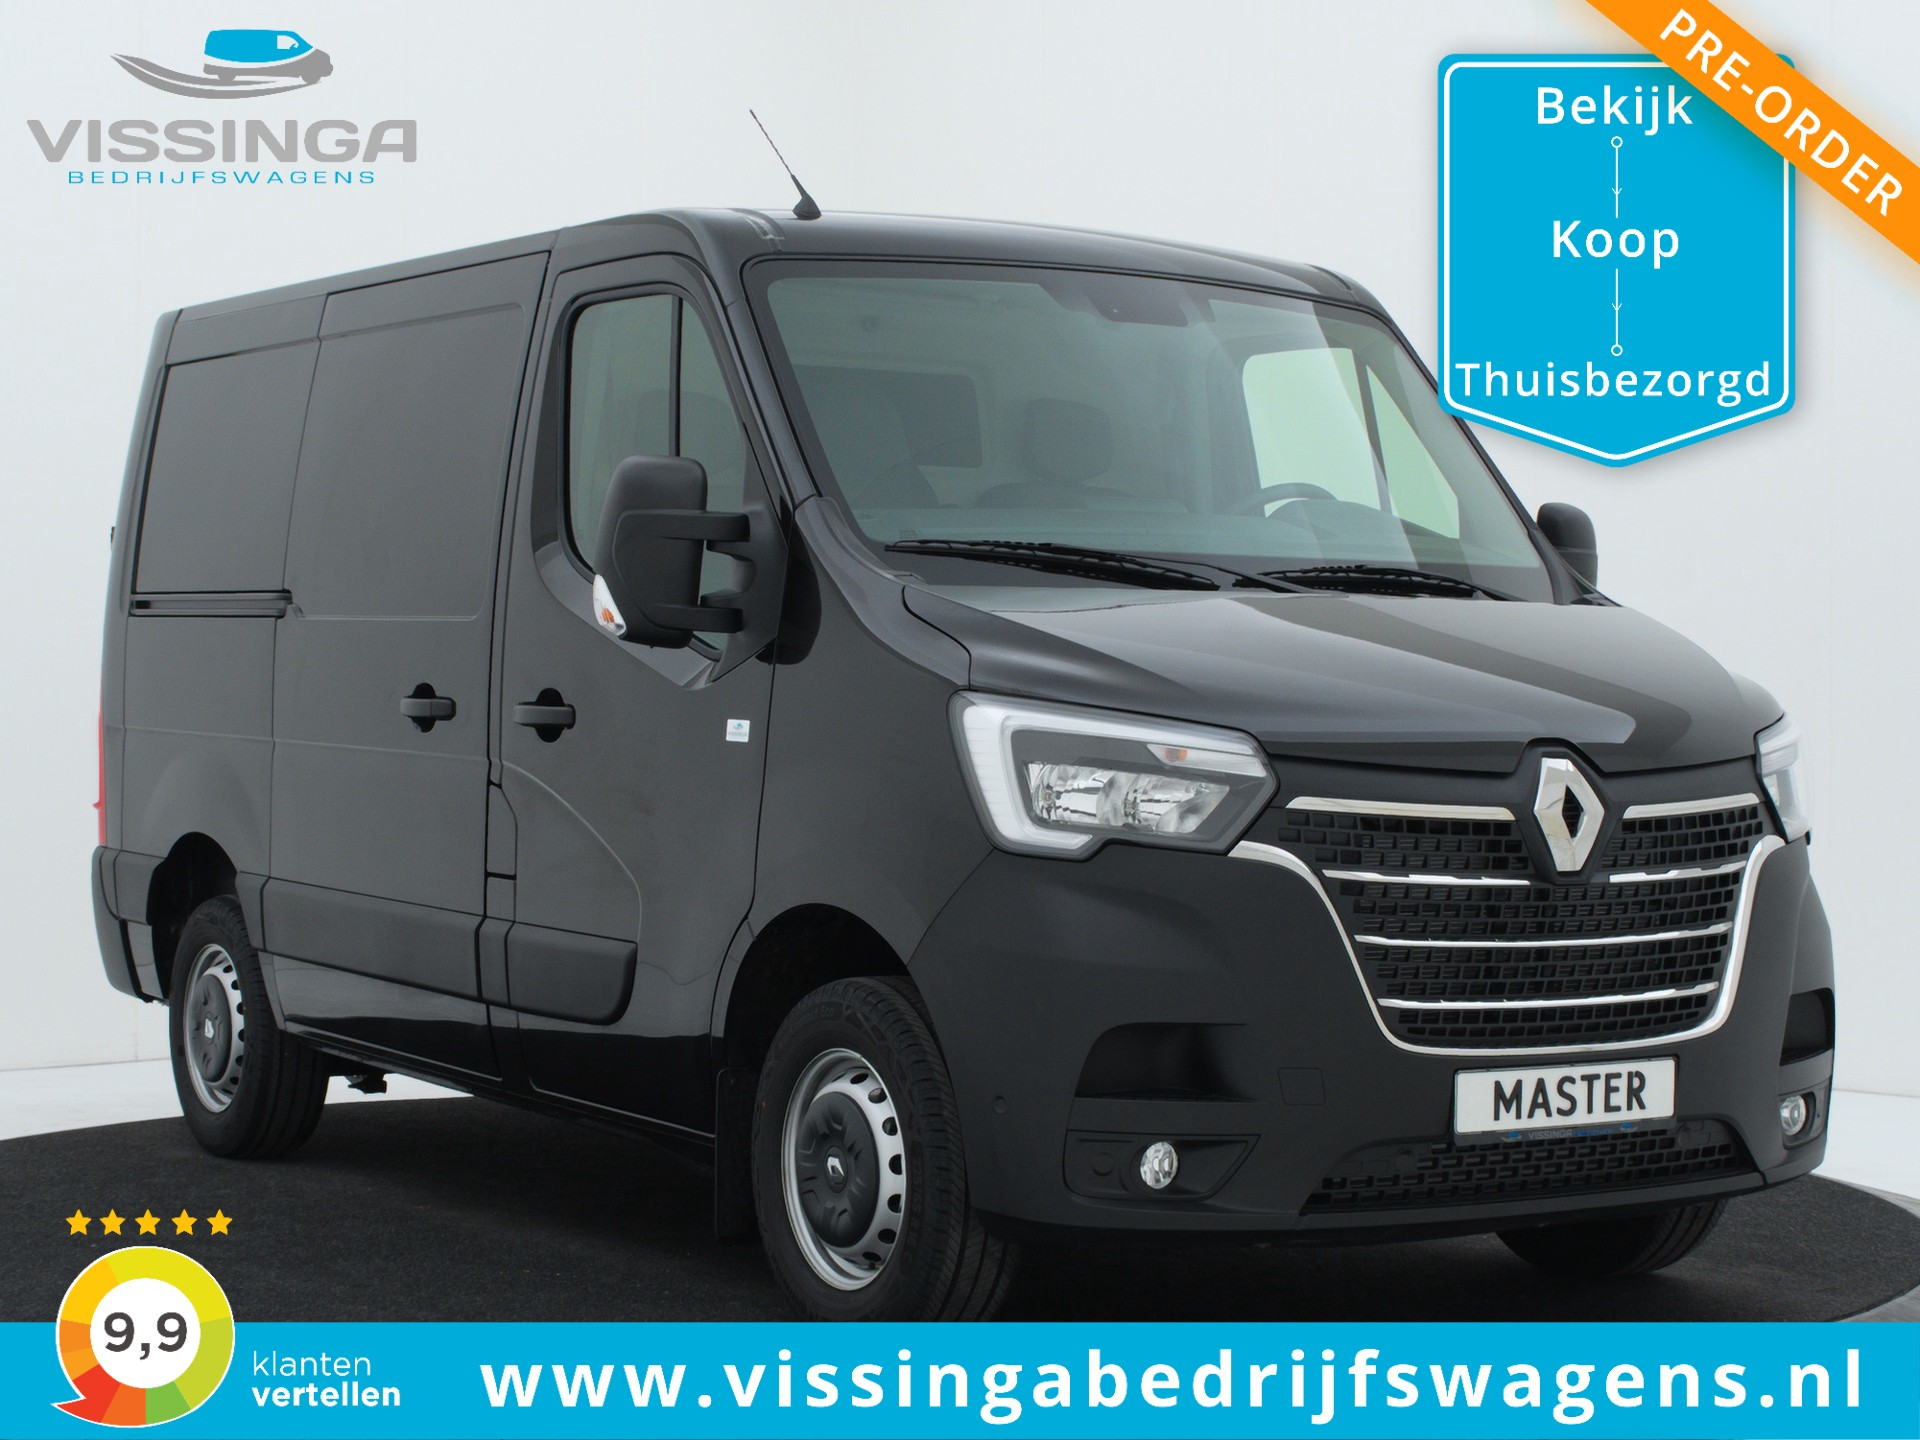 Renault Master T28 2.3 dCi L1H1 135 pk Twin-Turbo Light Duty